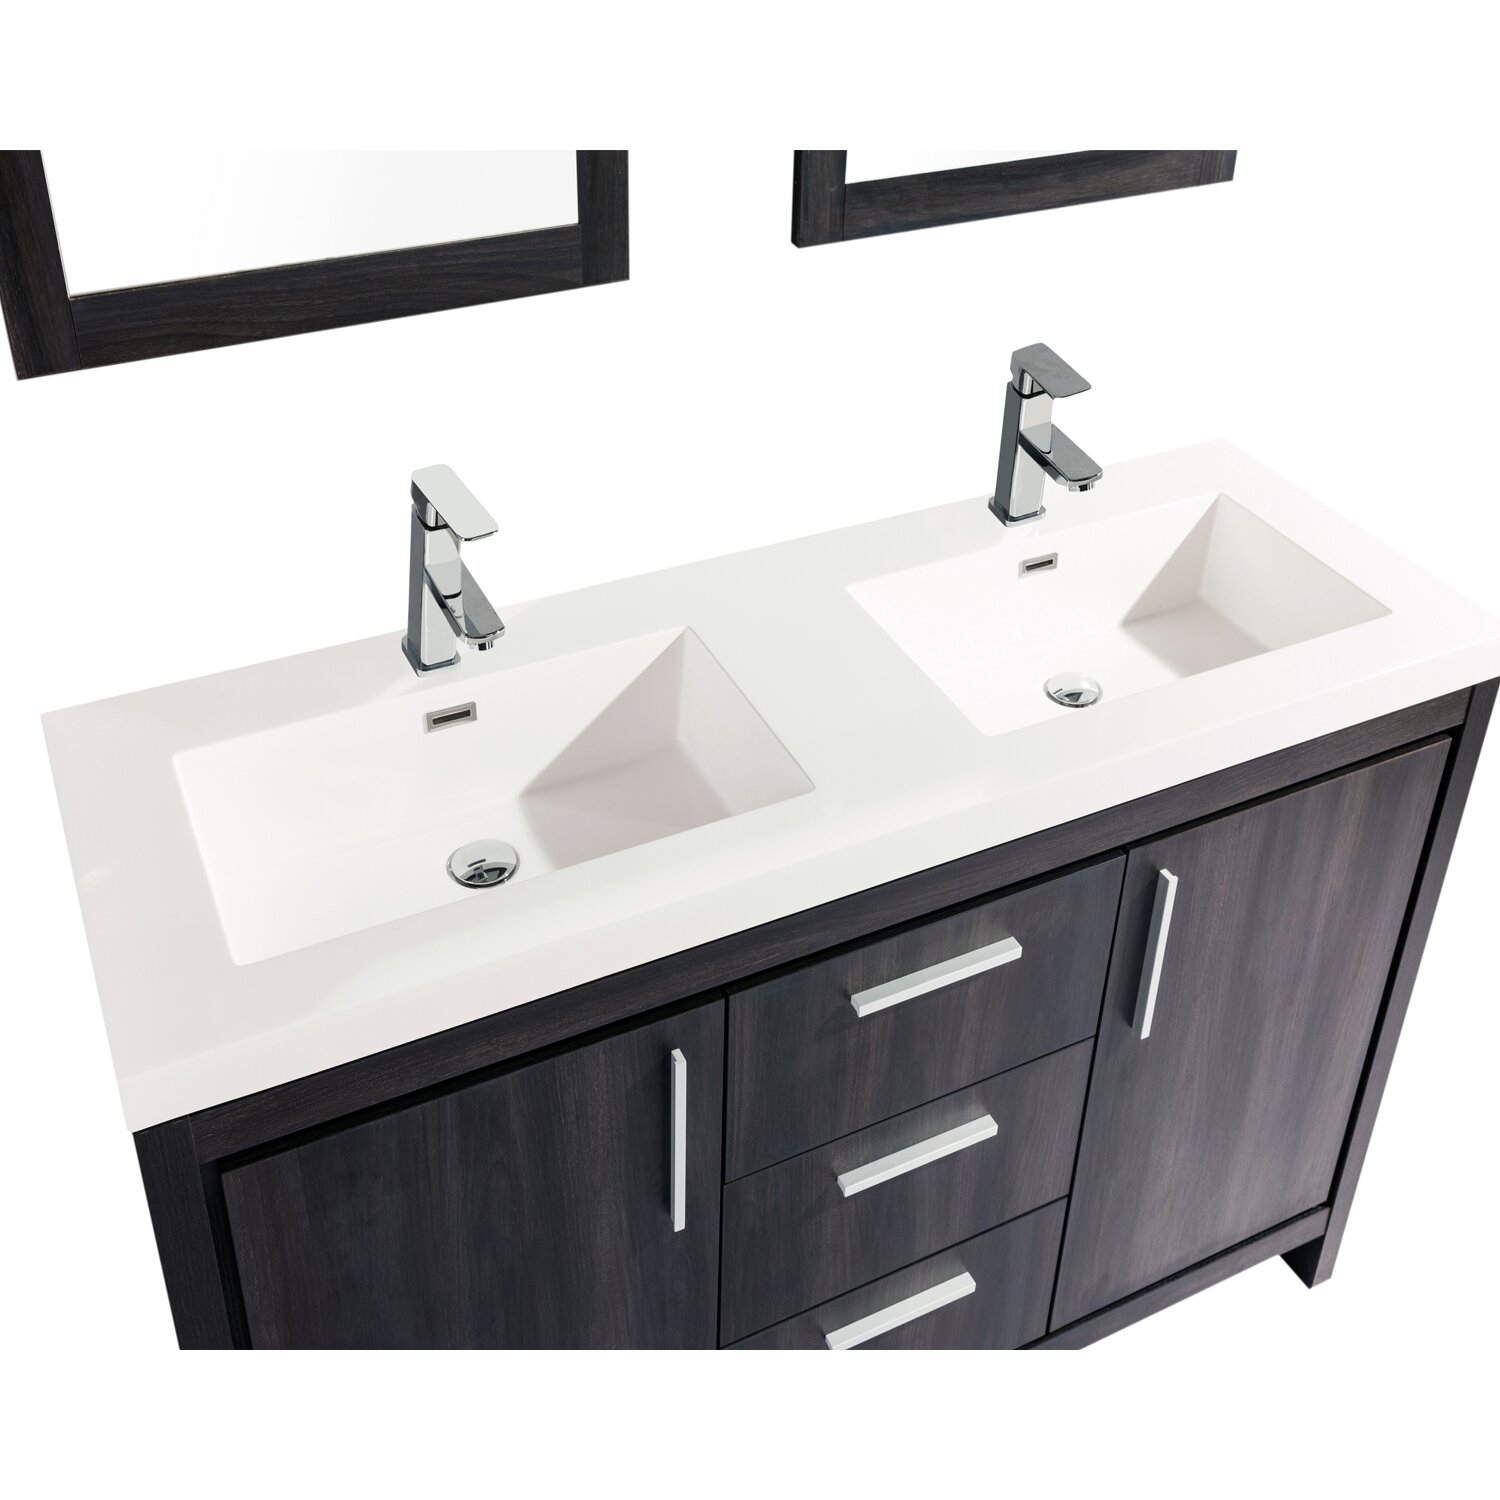 for modern throughout plans fl end vanities miami exquisite brands bath high vanity centom bathroom on